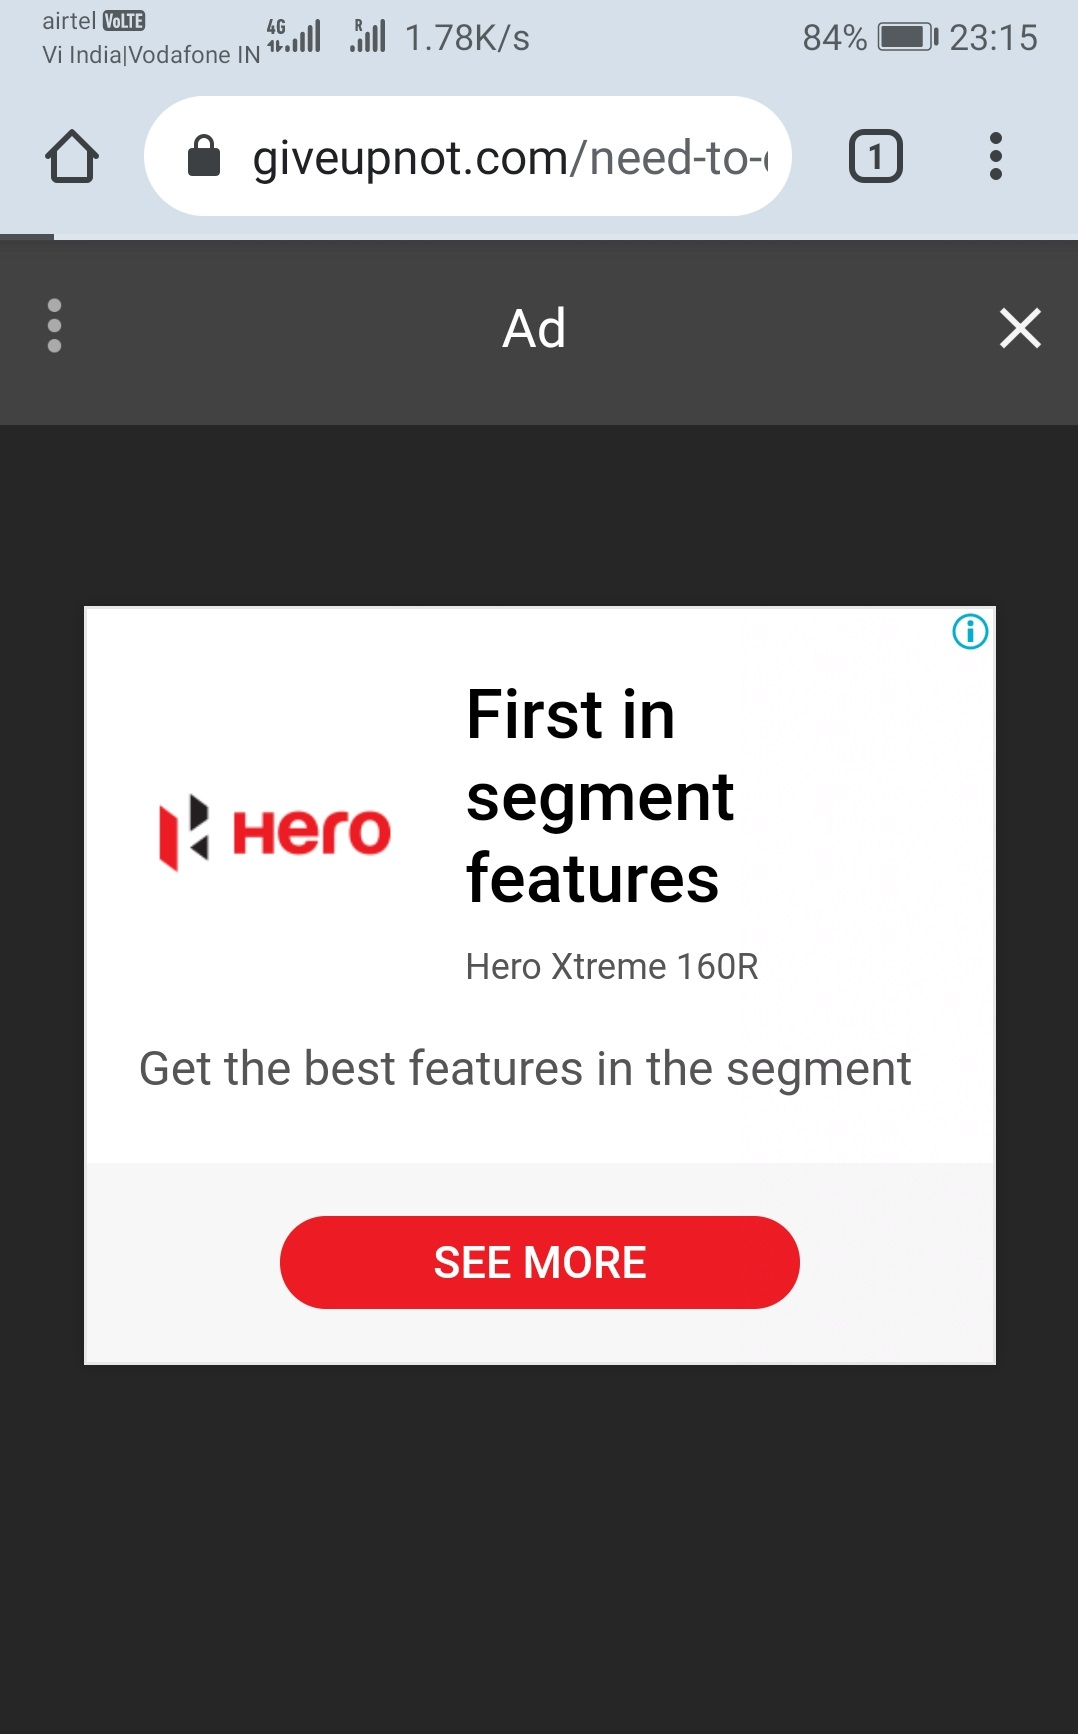 Example of Vignette Ad on Mobile